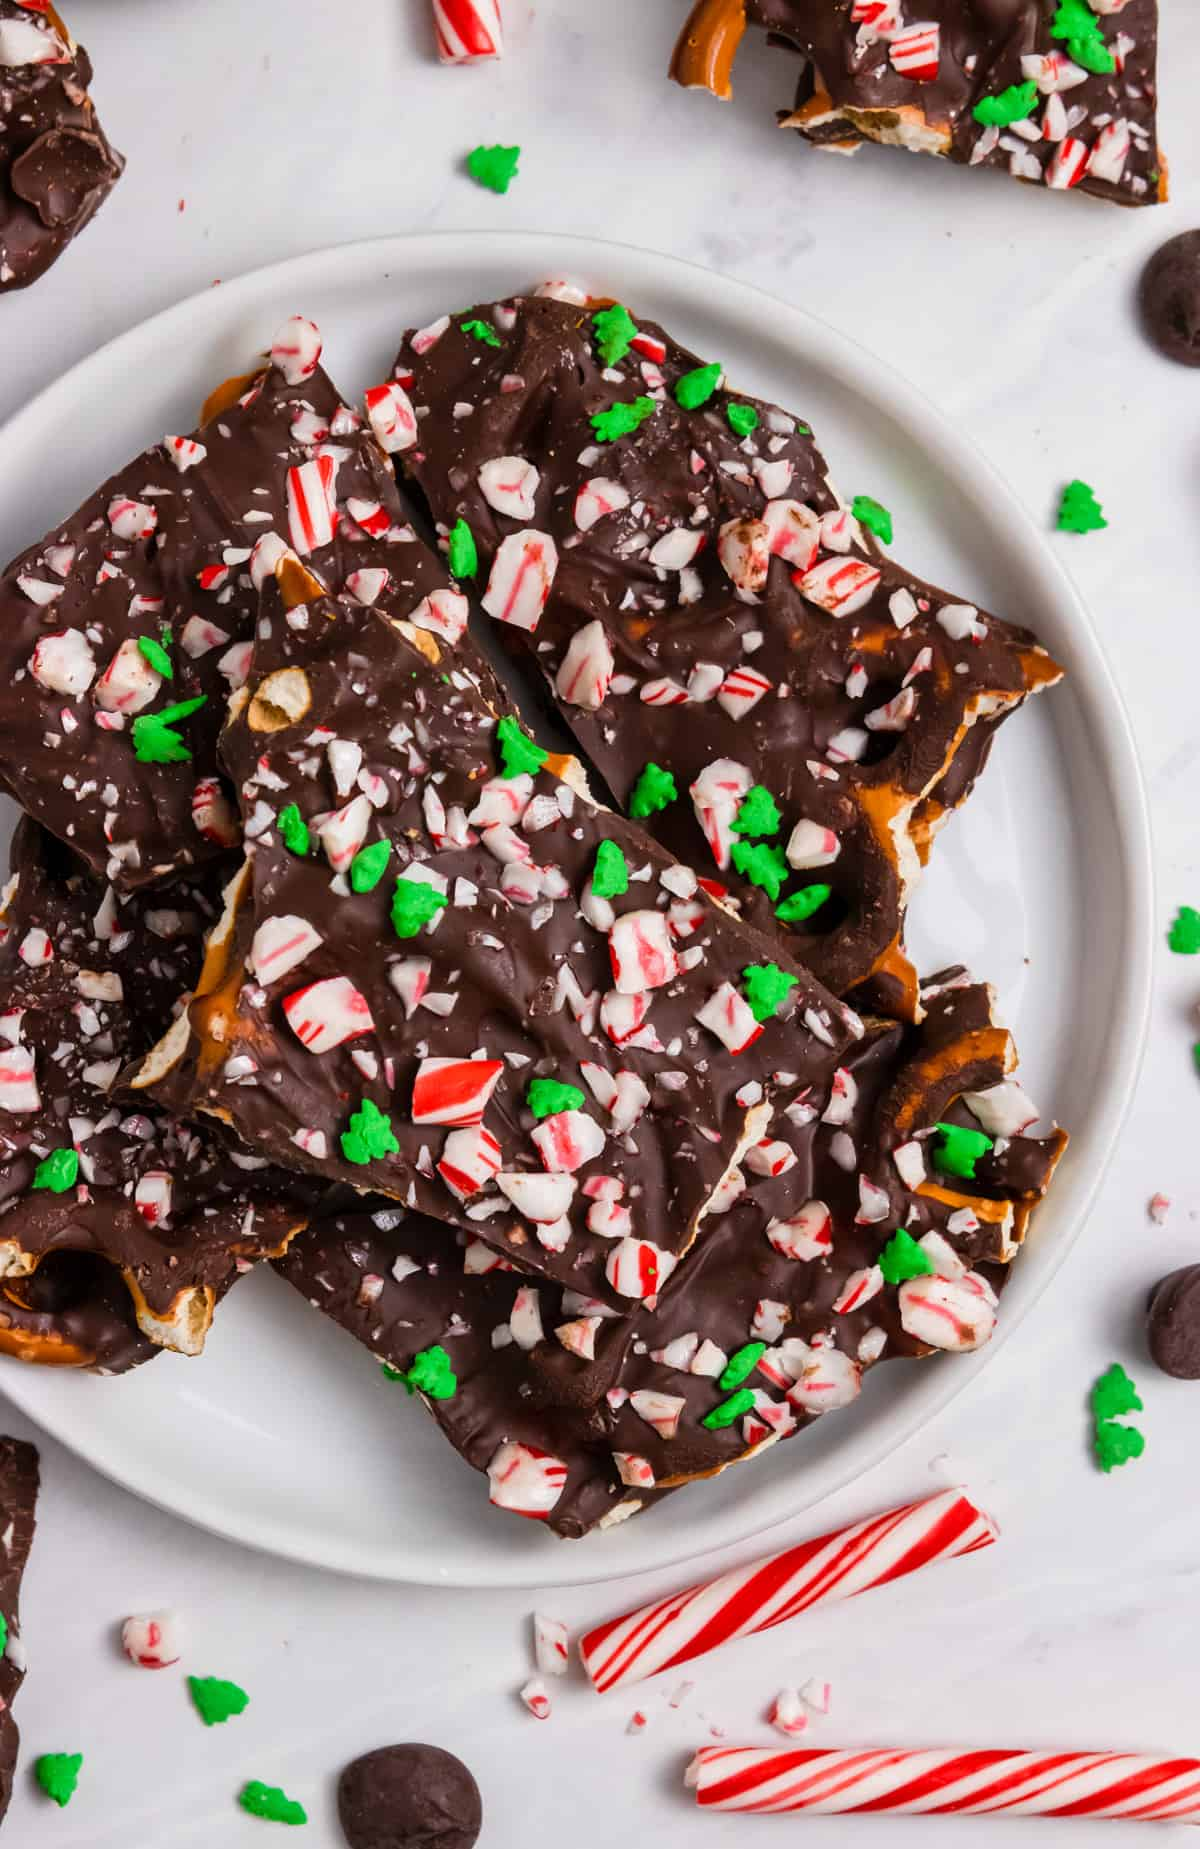 Pretzel bark with candy canes and green sprinkles on plate.